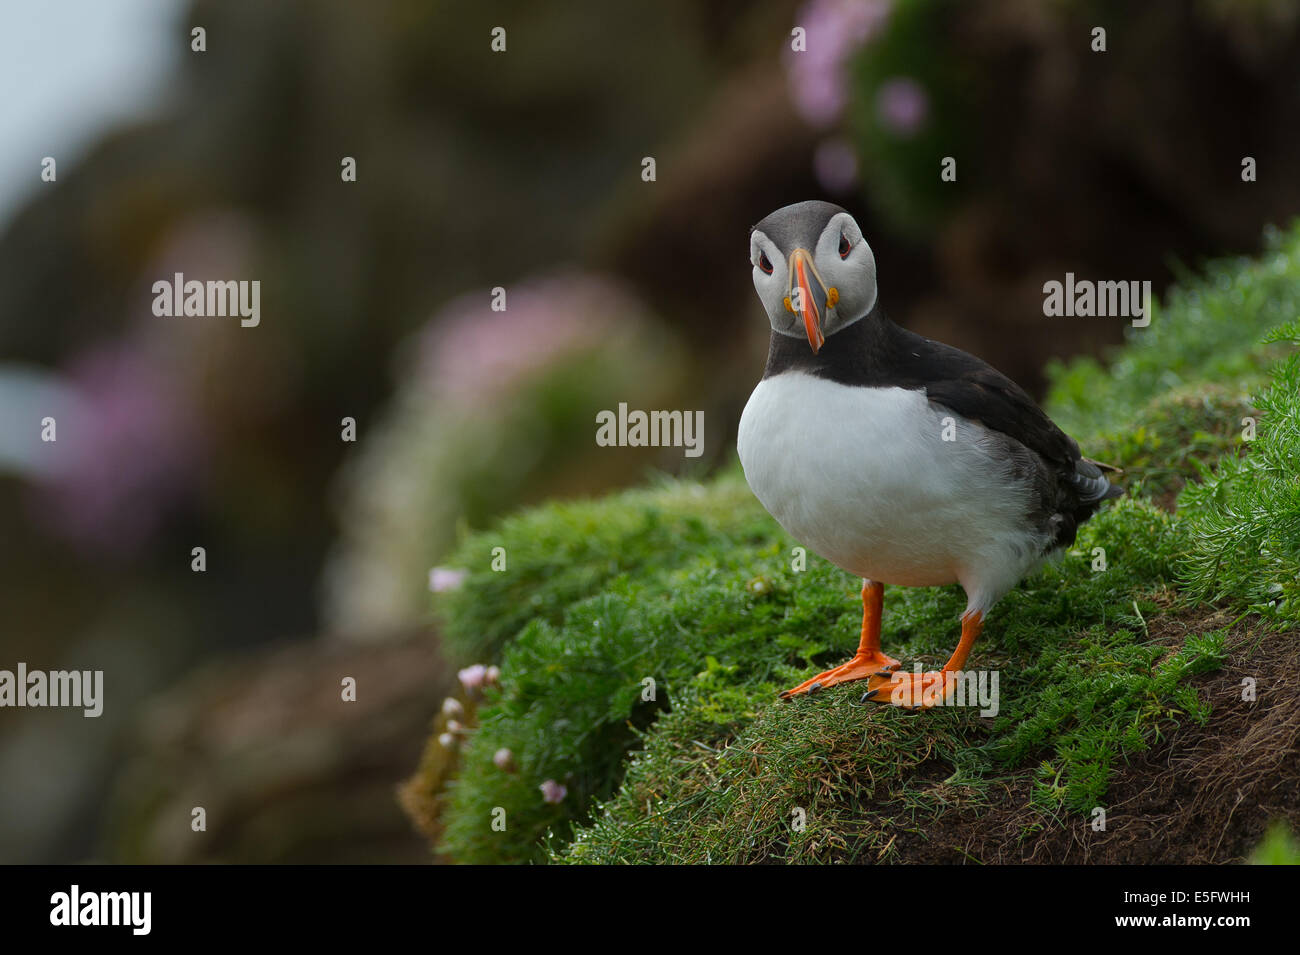 Puffin on Cliff Stock Photo